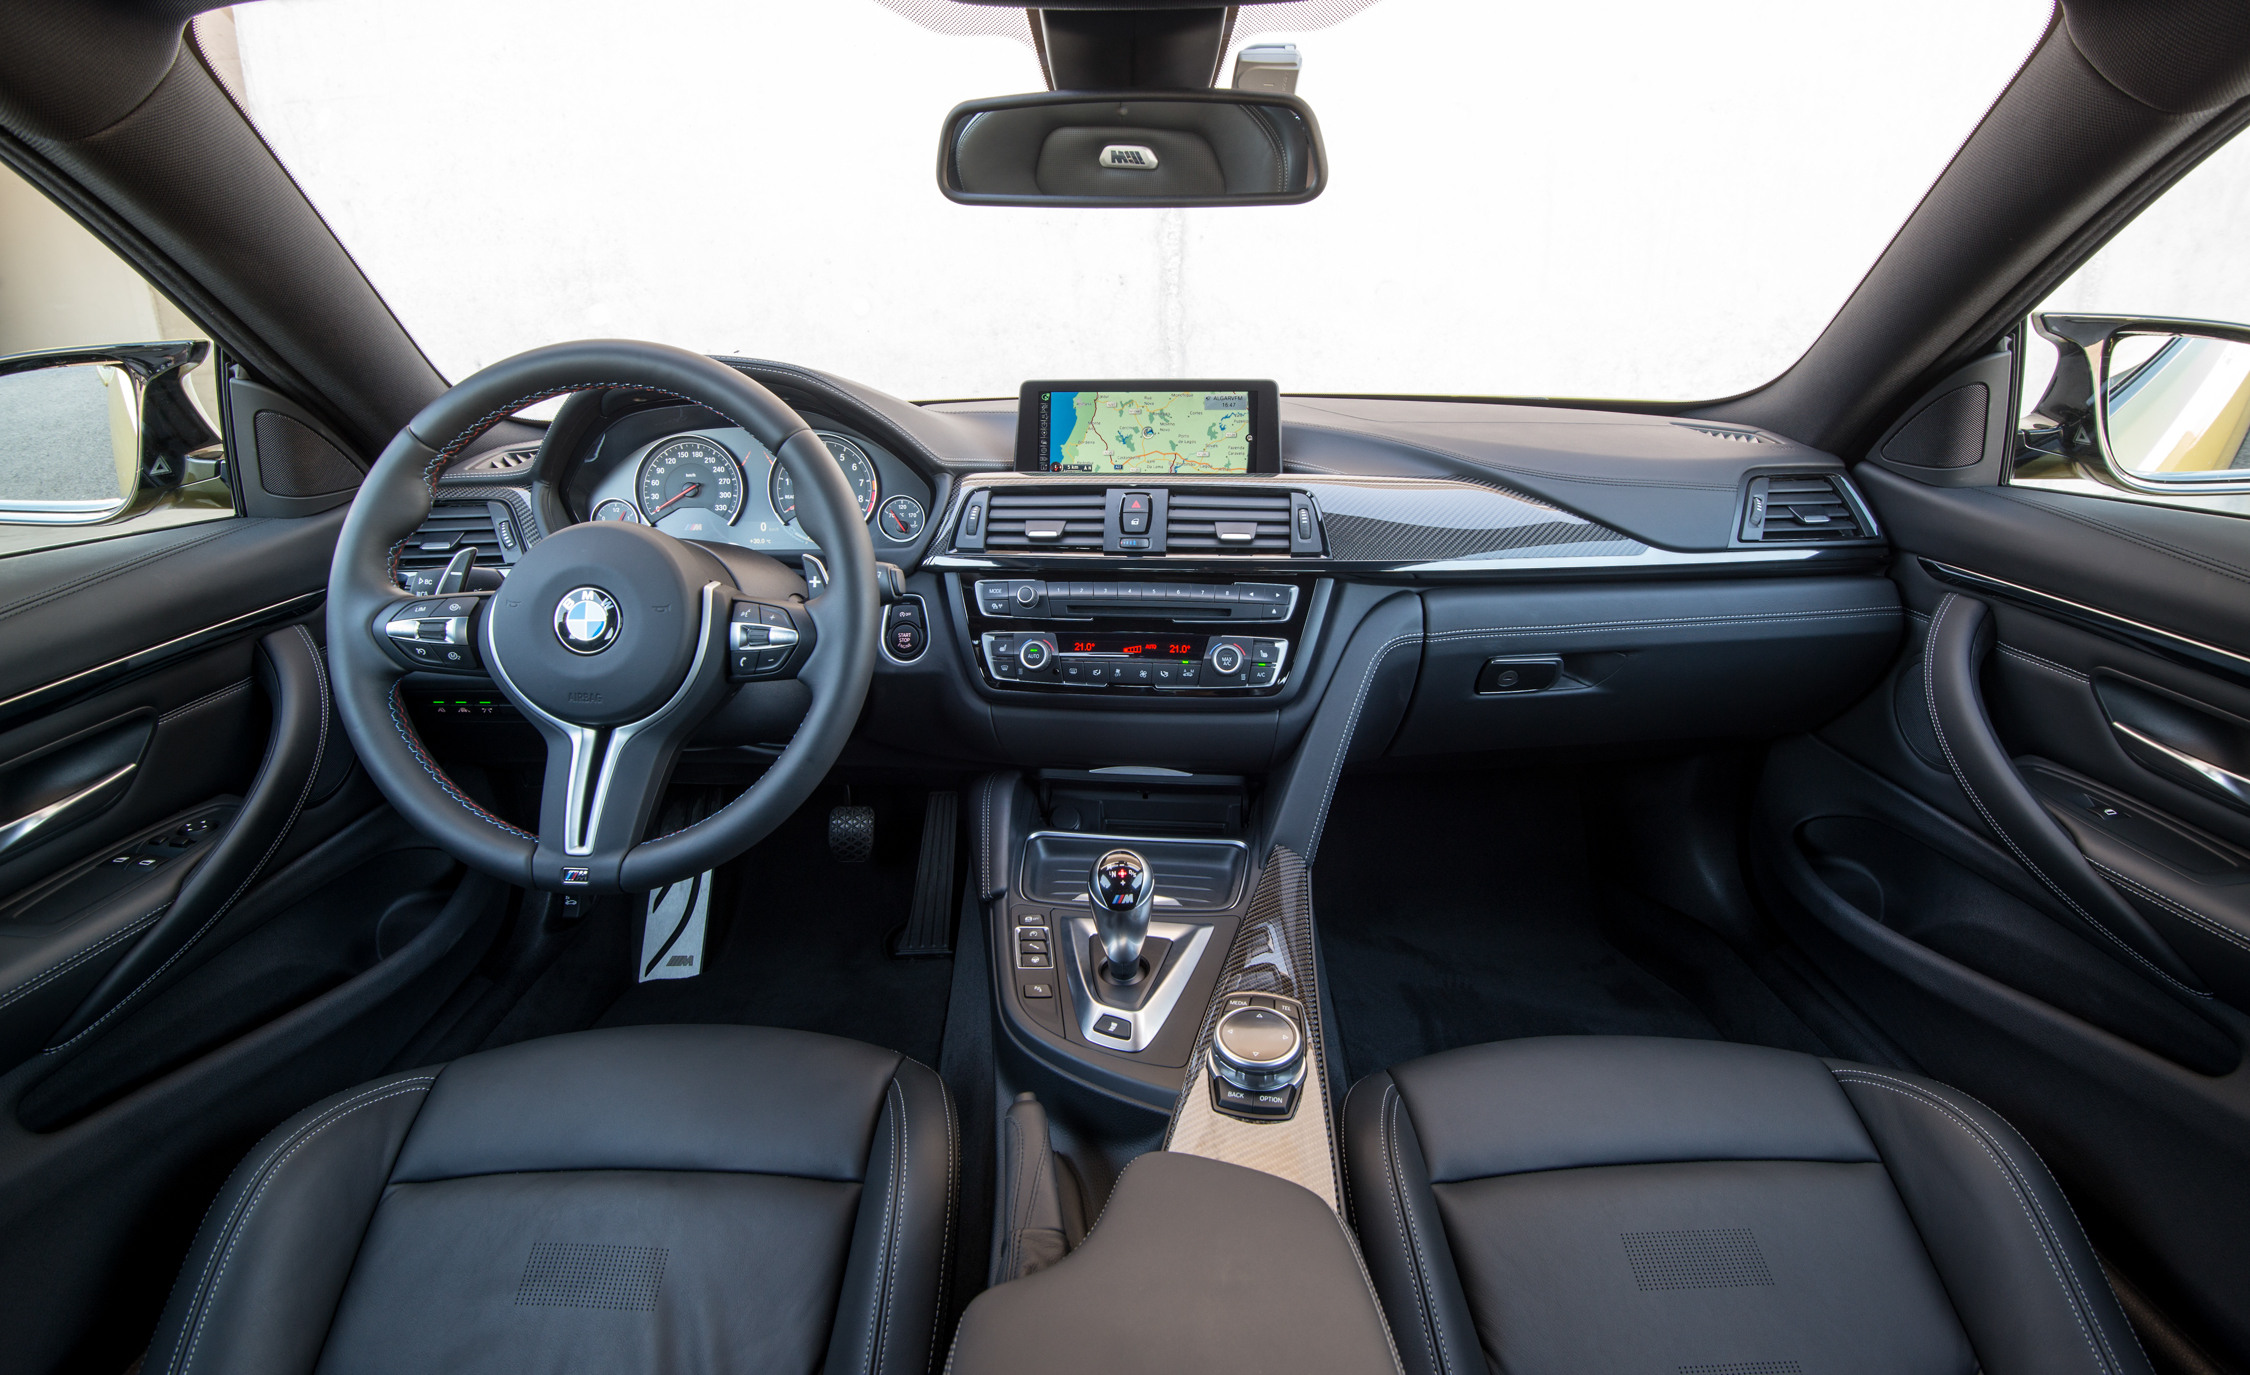 2015 BMW M4 Coupe Interior (Photo 22 of 41)